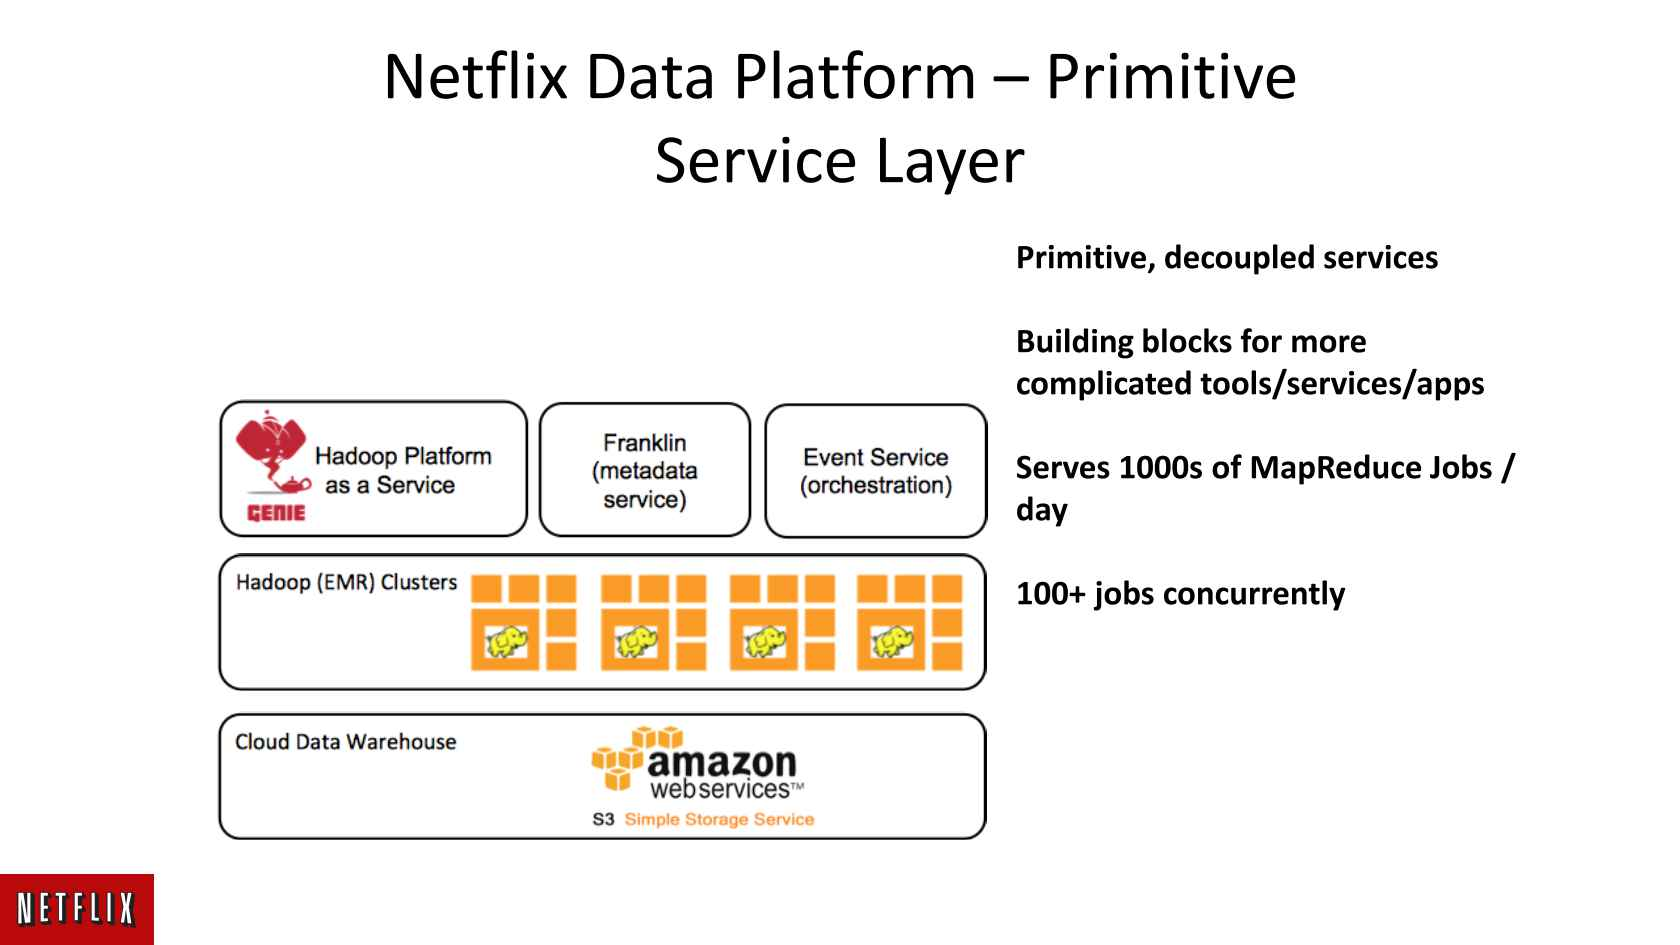 Big Data Platform as a Service at Netflix